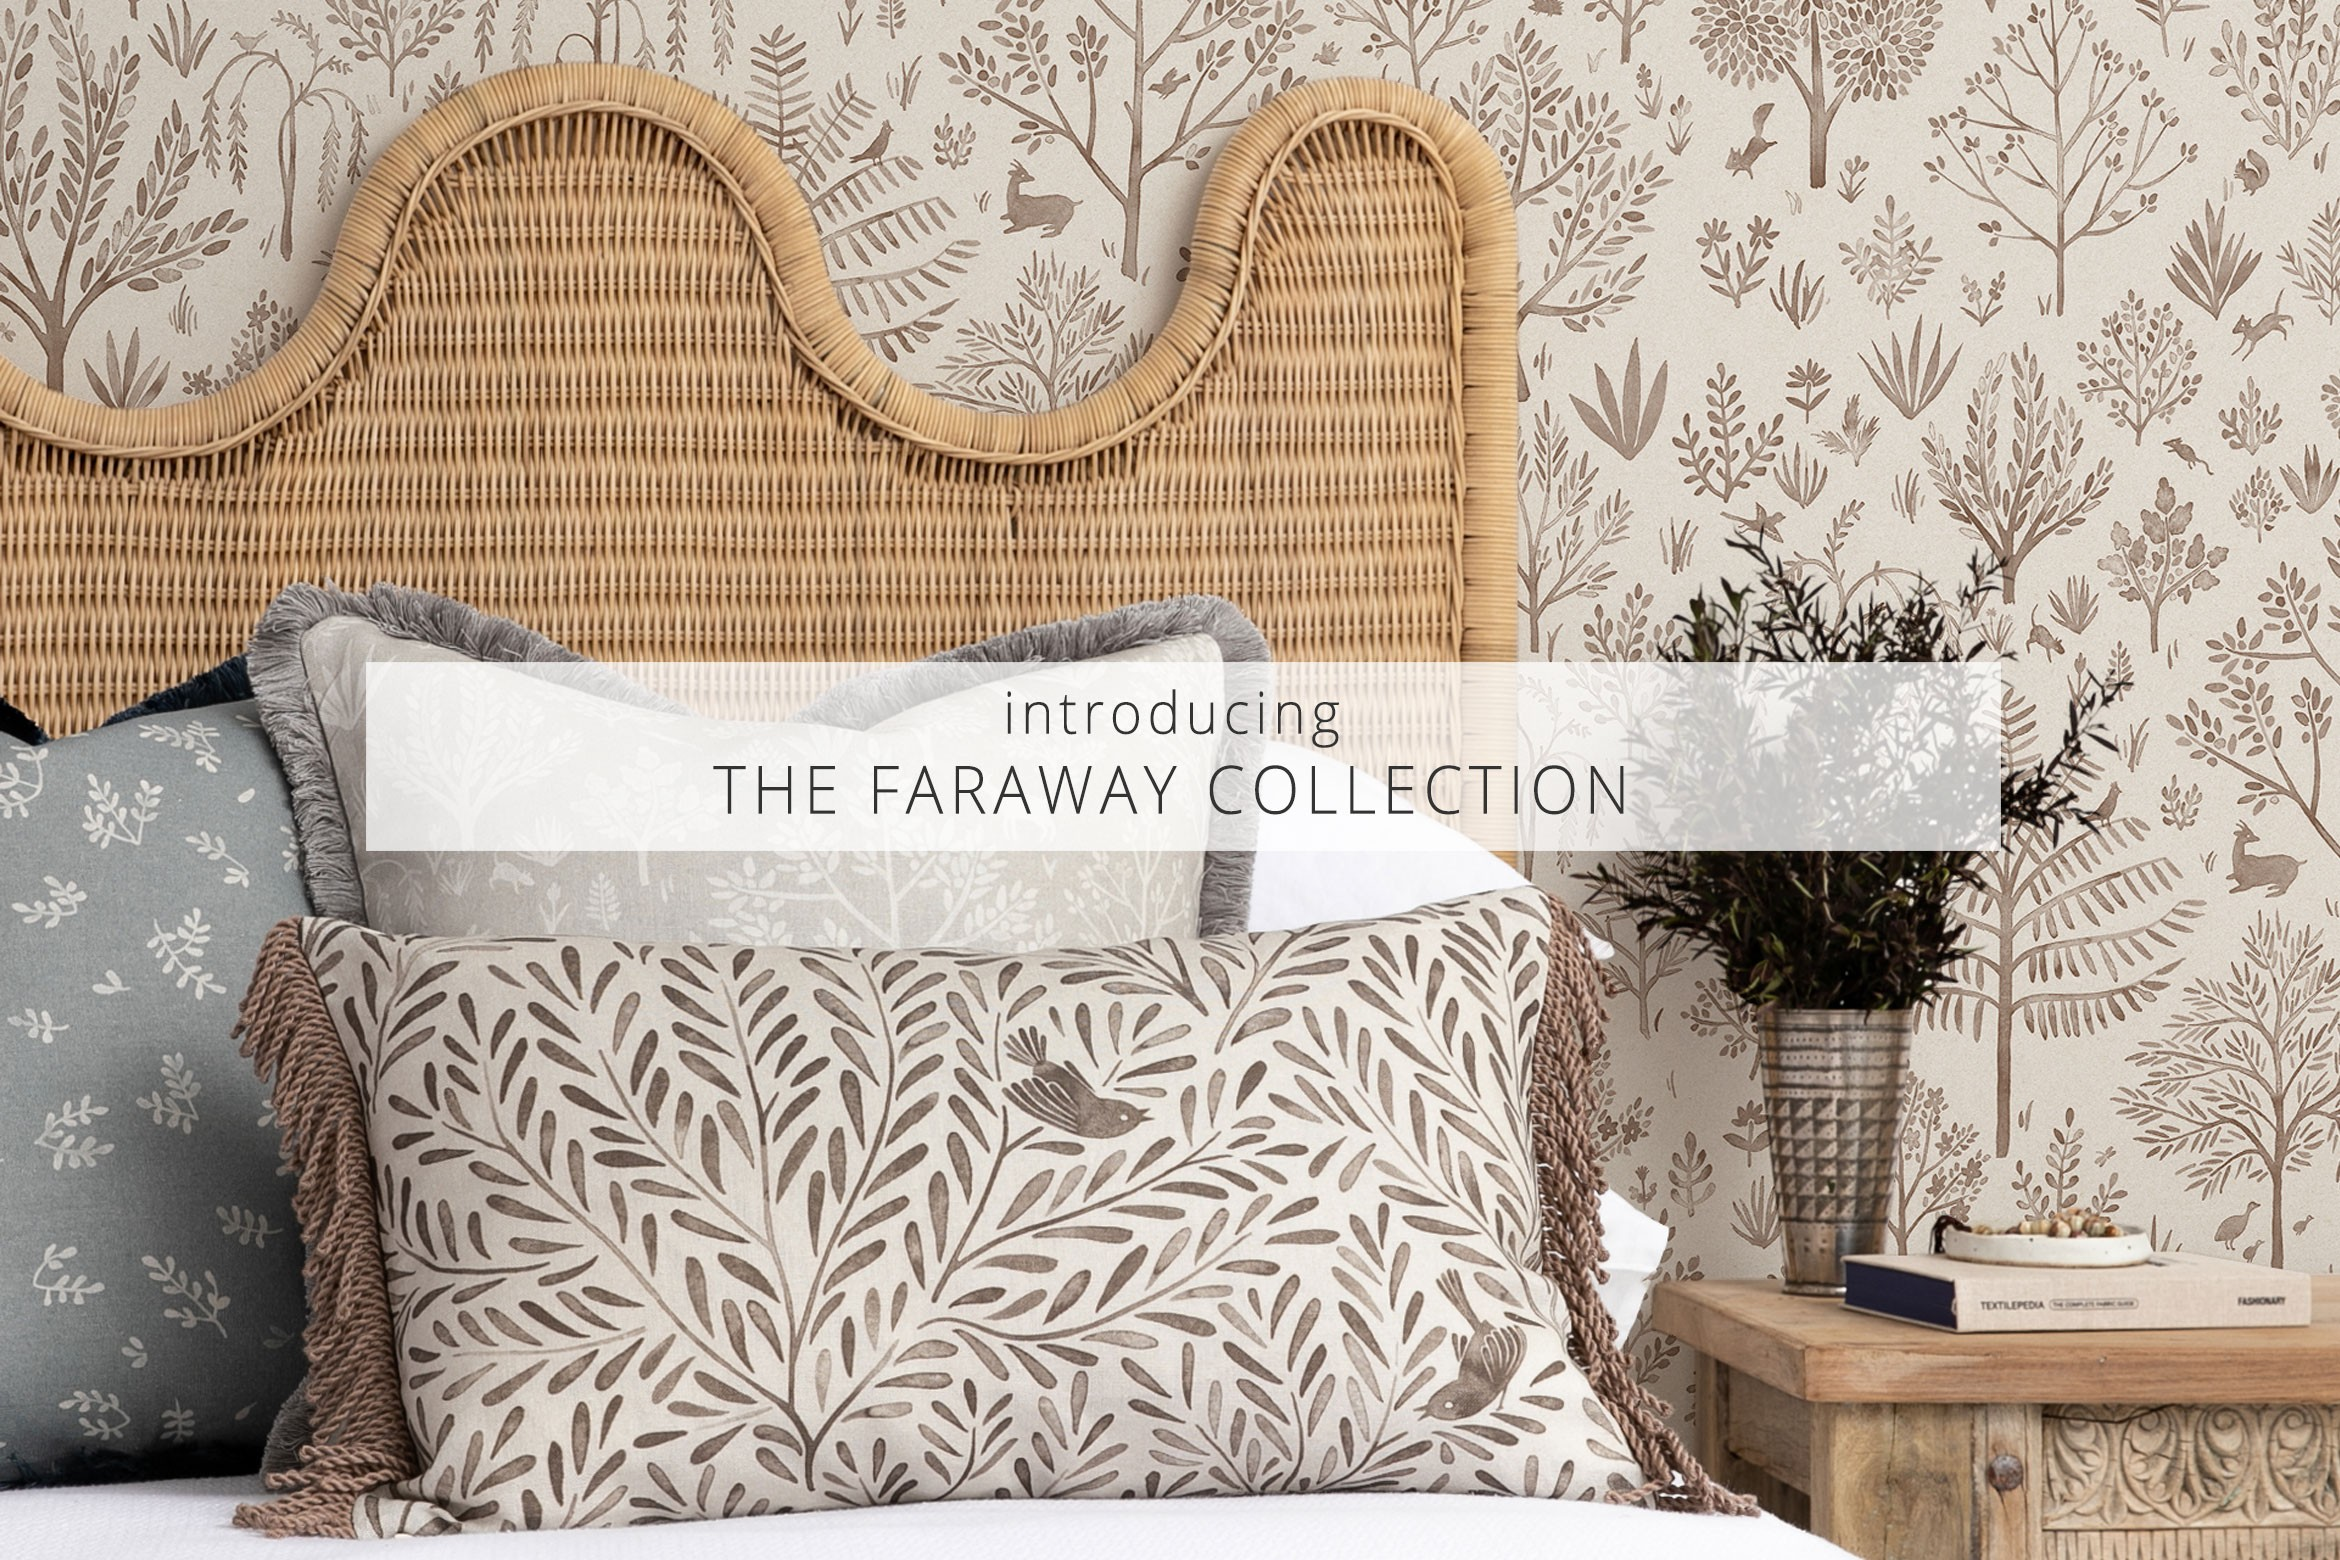 Introducing The Faraway Collection - Fabric & Wallpaper by Quercus & Co.